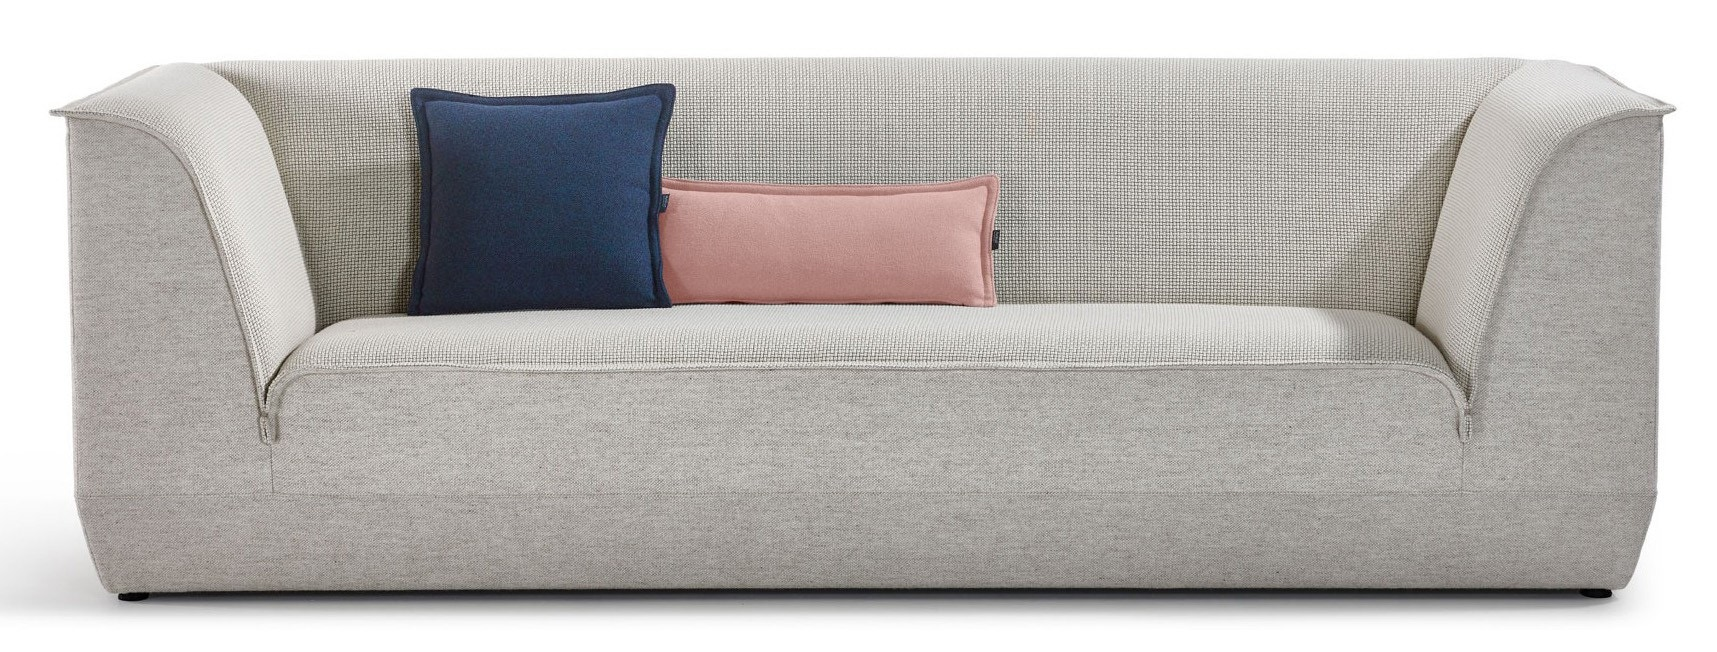 Artifort Big Island Sofa